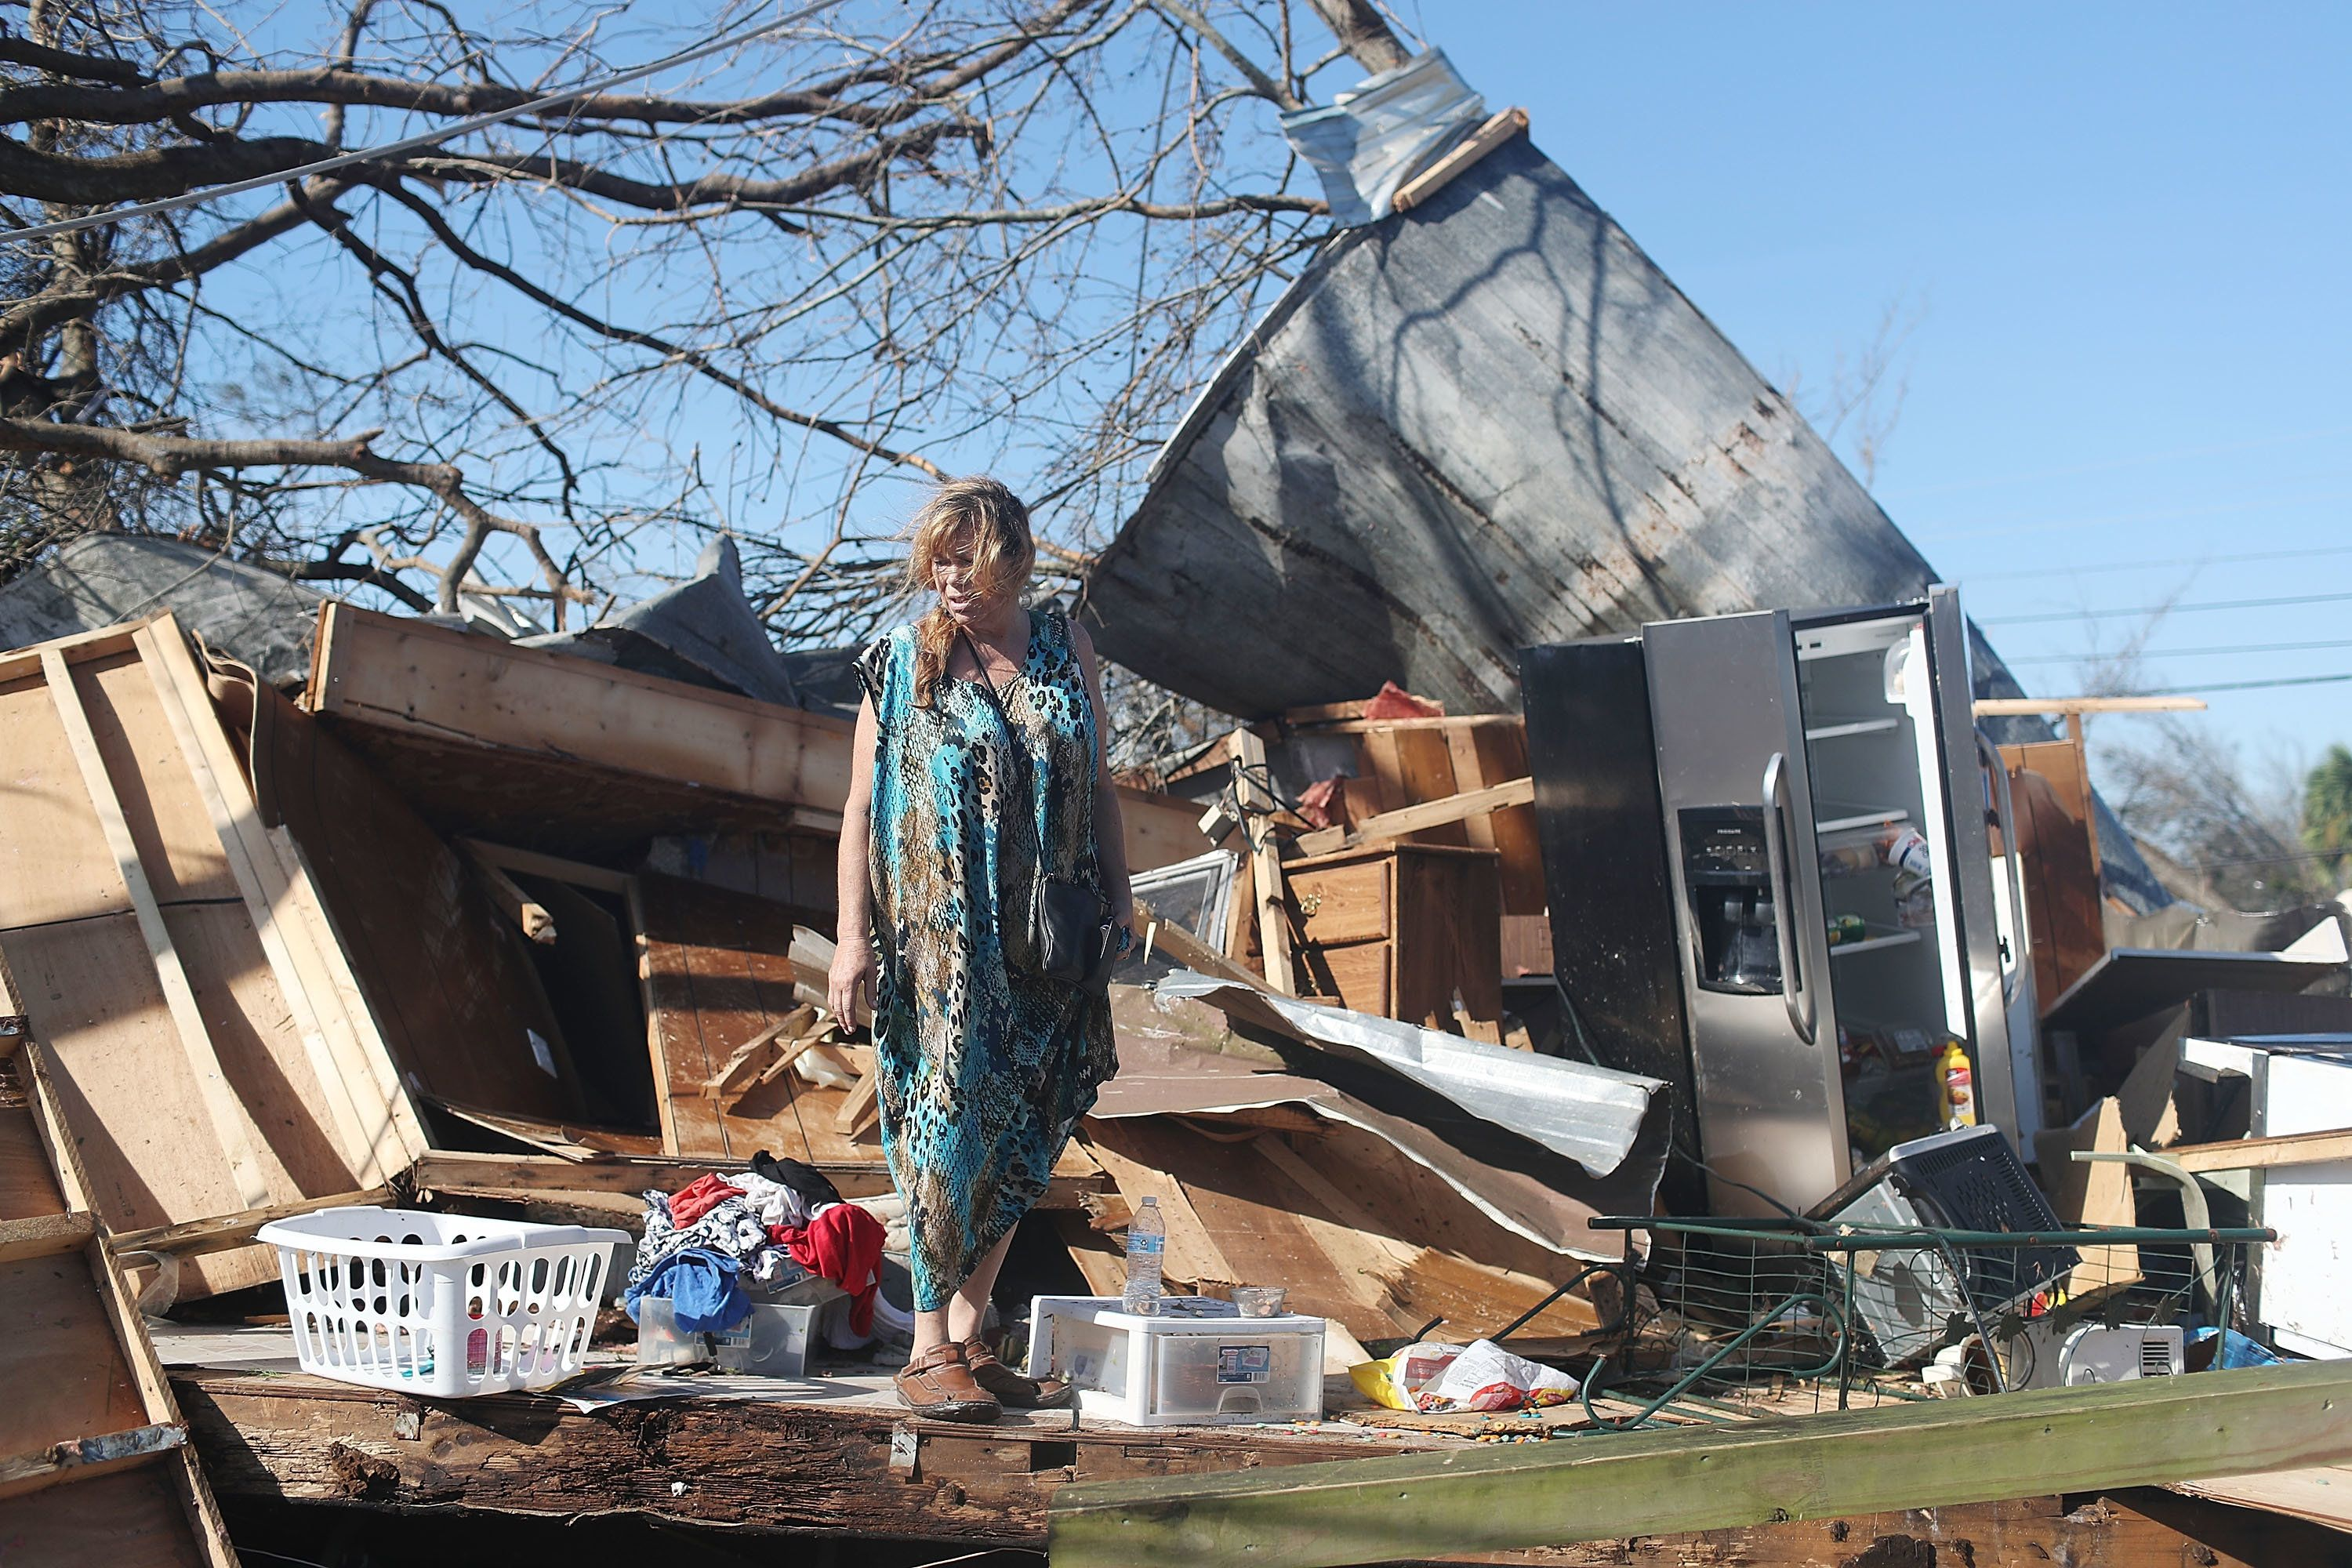 Kathy Coy stands among what is left of her home in Panama City after Hurricane Michael destroyed it. She said she was in the